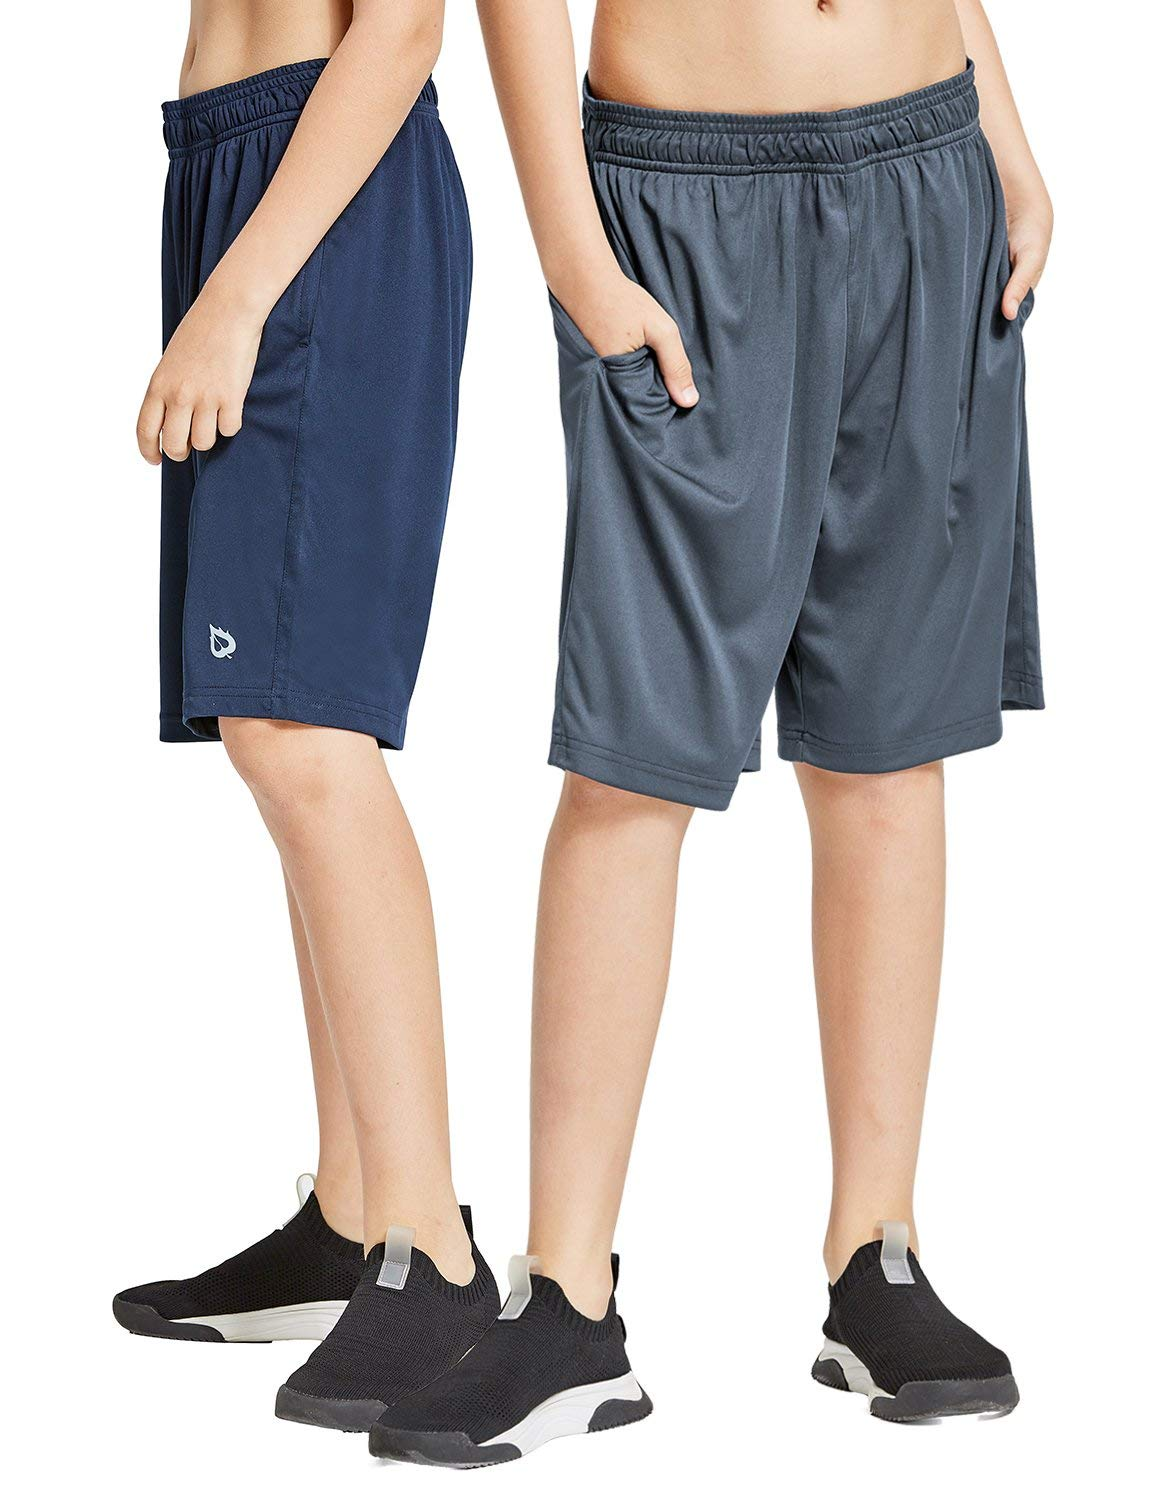 Baleaf Youth Boys' Athletic Running Shorts Pockets Tennis Volleyball Shorts Pack of 2 Navy/Gray Size M by Baleaf